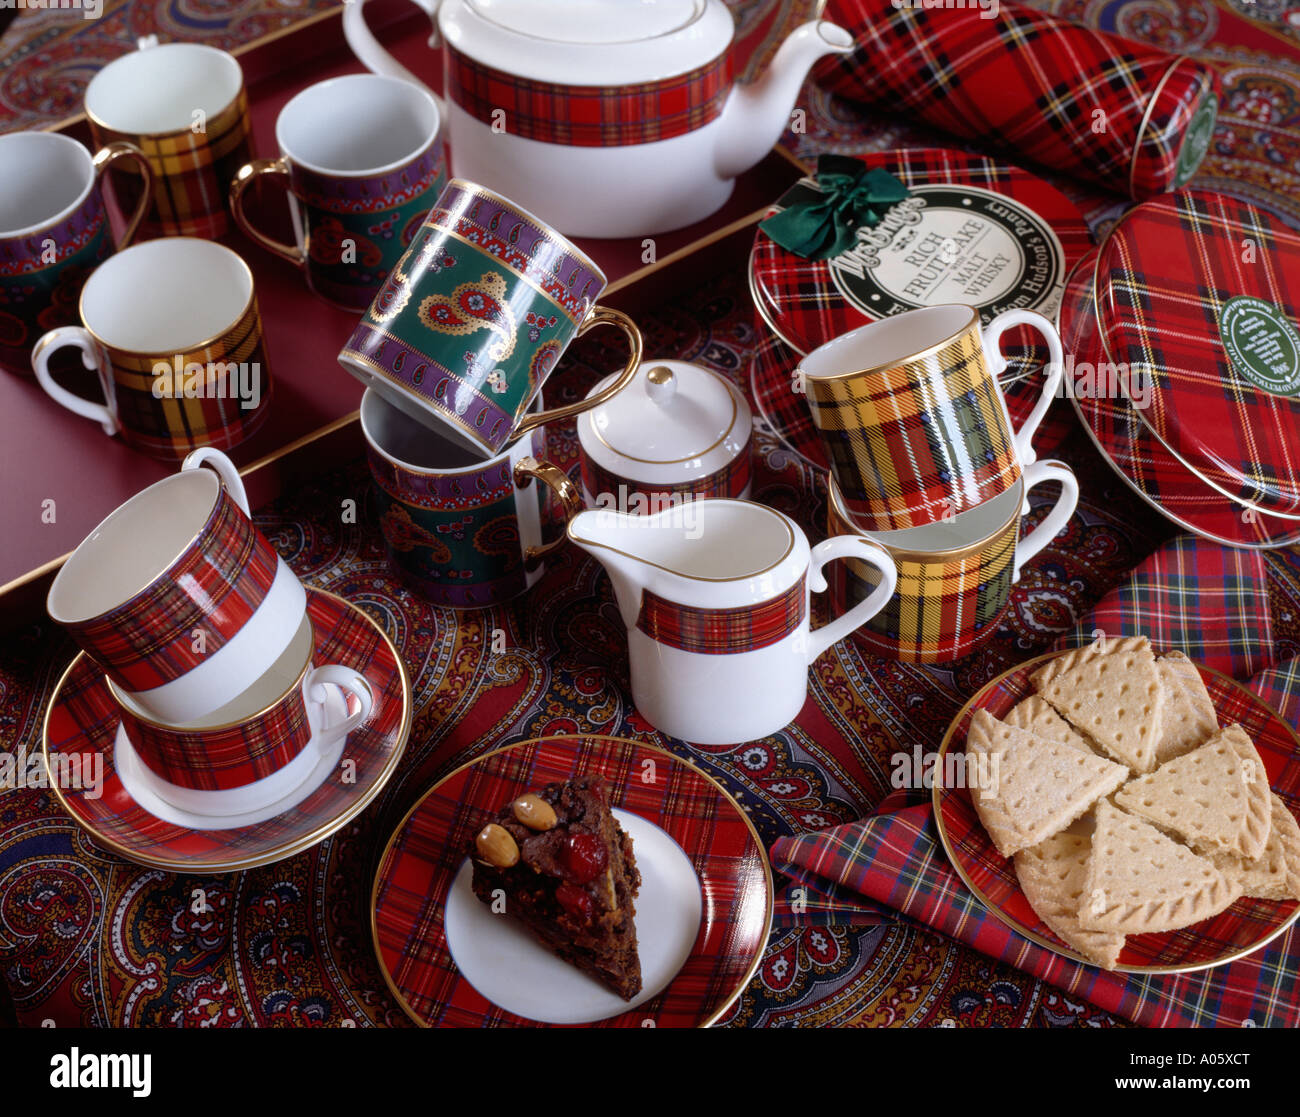 Shortbread and tartan crockery & Shortbread and tartan crockery Stock Photo: 9890423 - Alamy